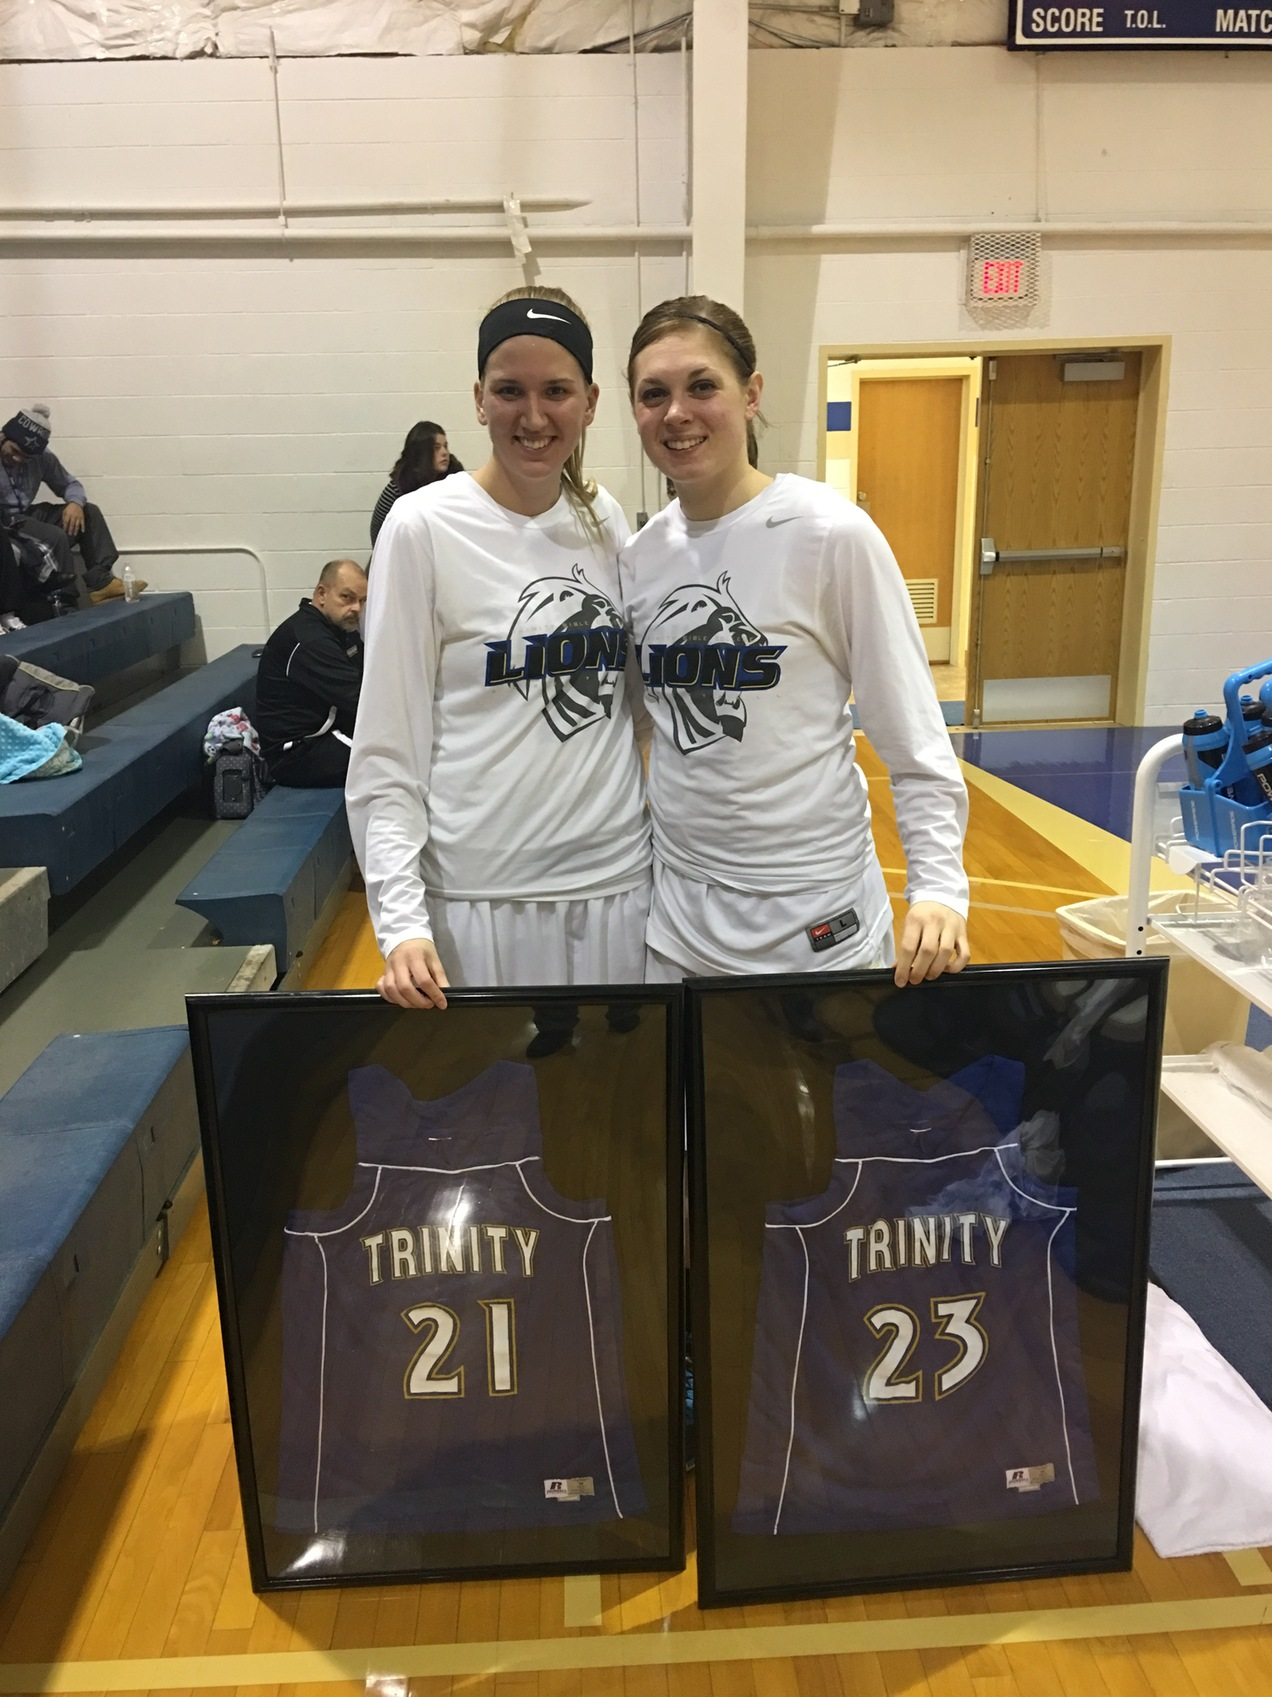 Lions WBB Wins Big on Senior Night